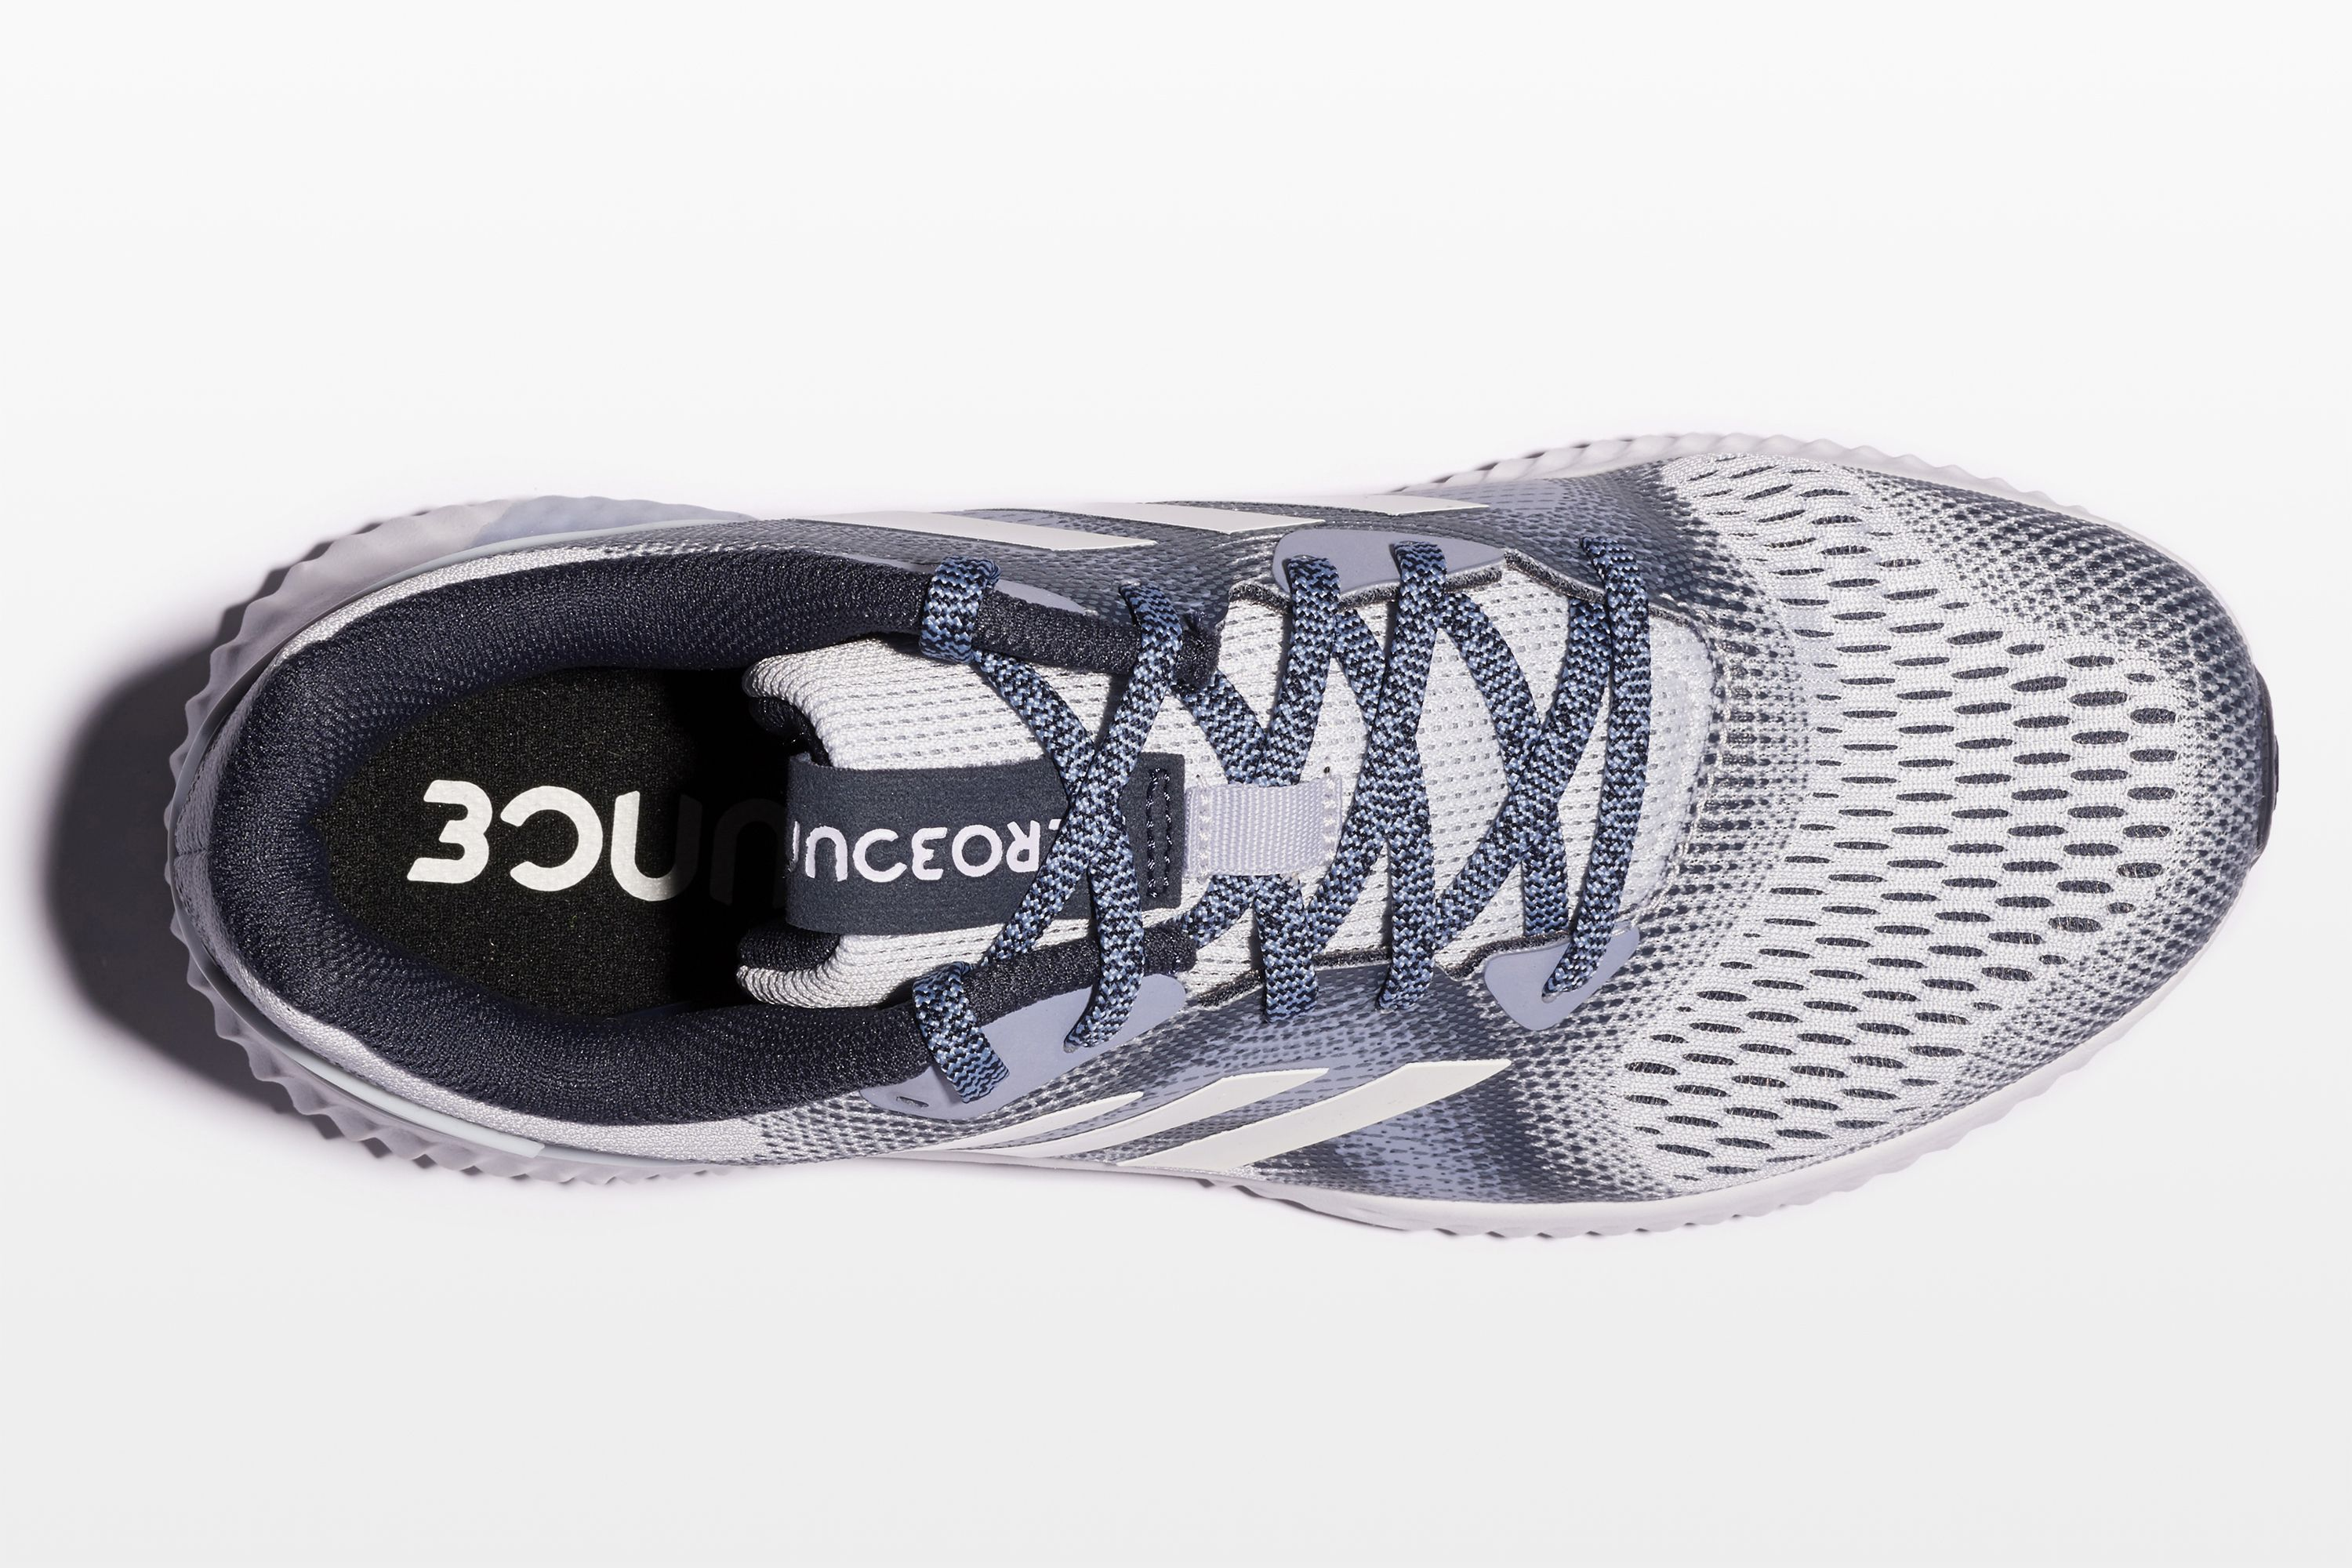 How to Choose Running Shoes - Tips for Buying the Best Running Shoes